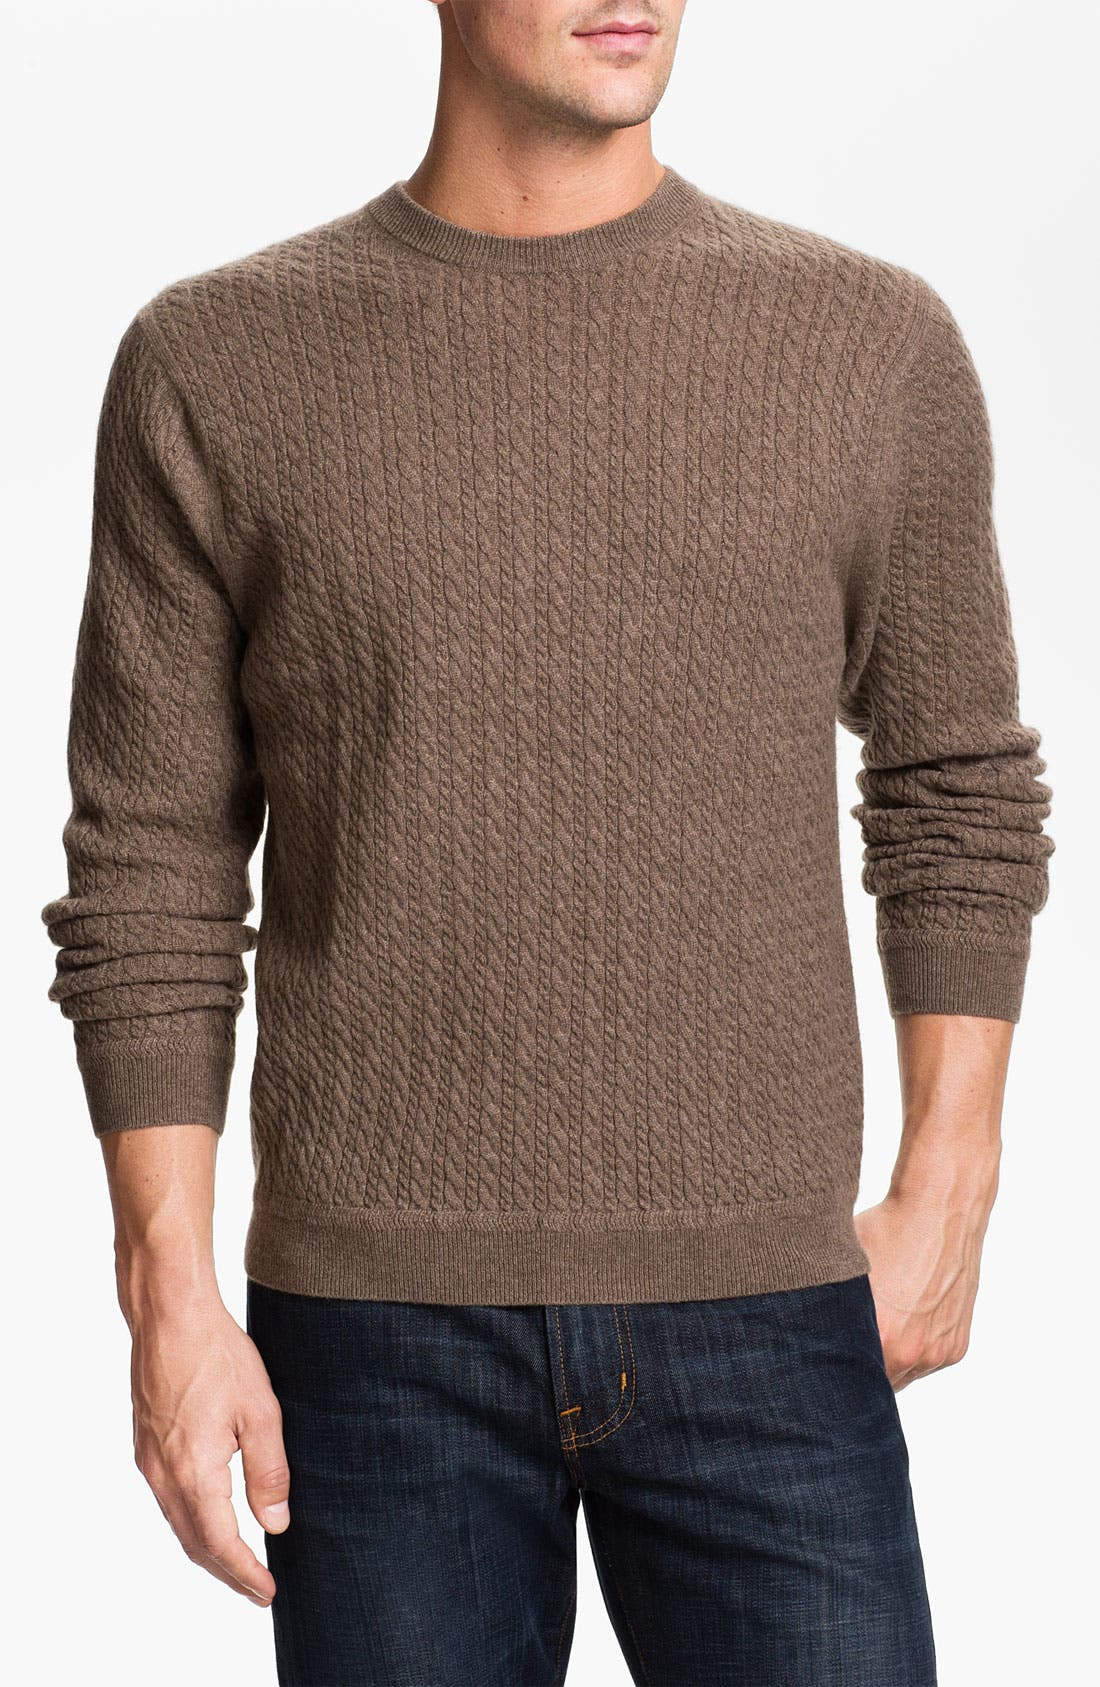 Main Image - John W. Nordstrom® Cable Knit Cashmere Sweater